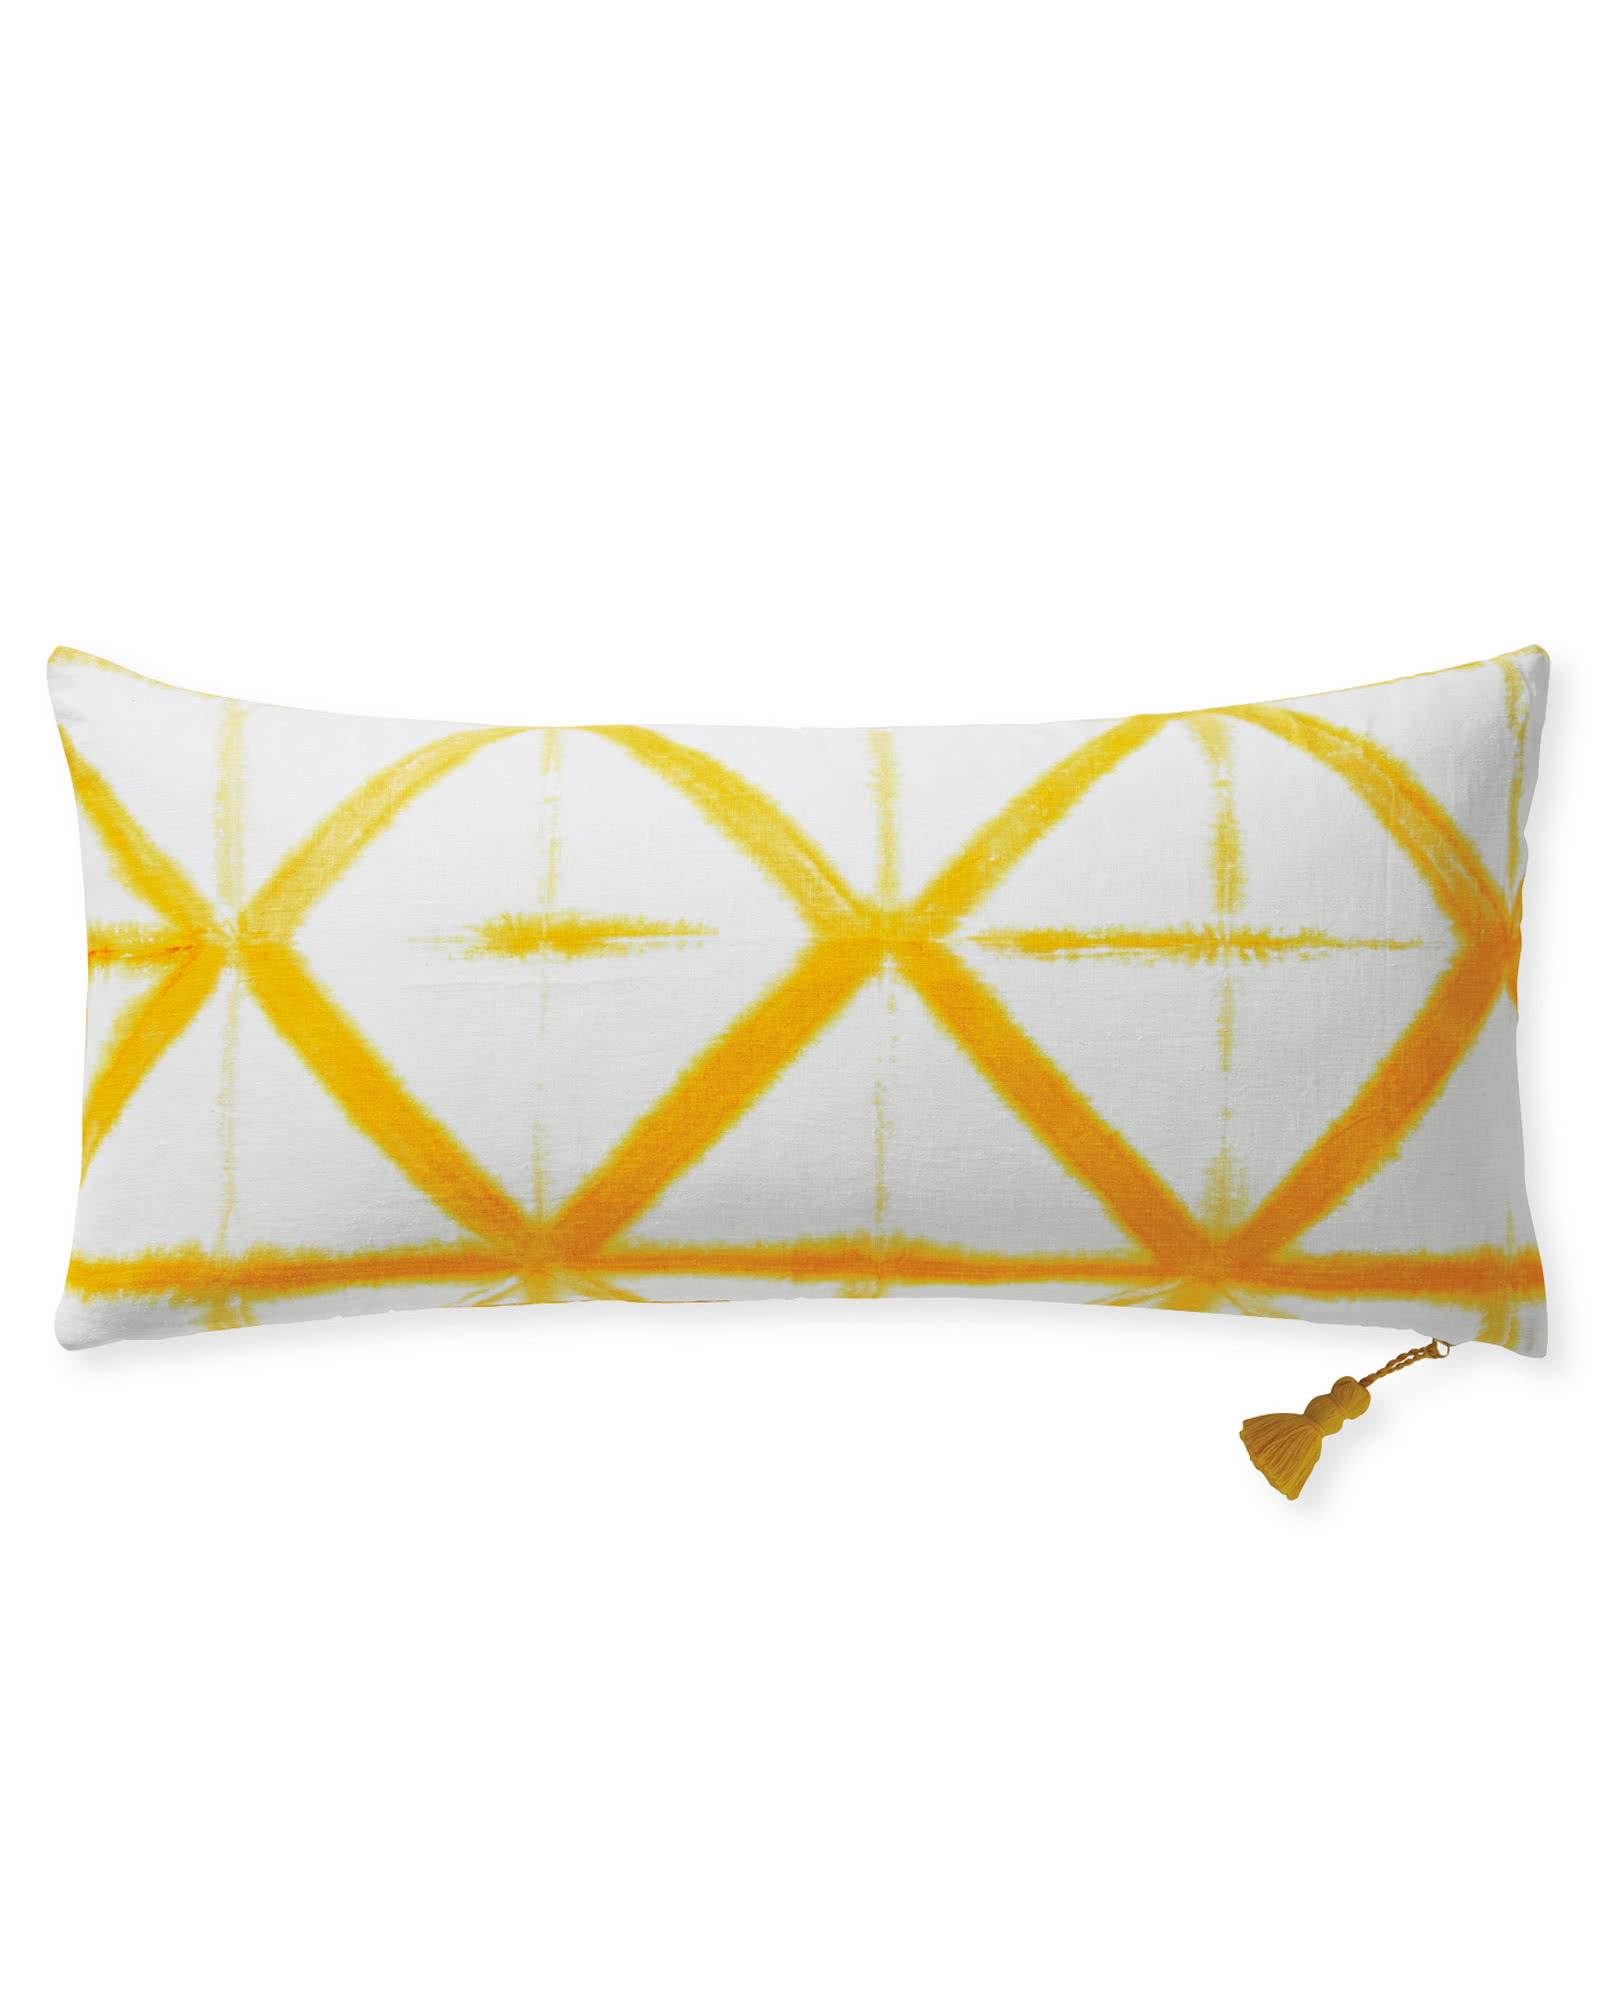 Starburst Pillow Cover, Yellow